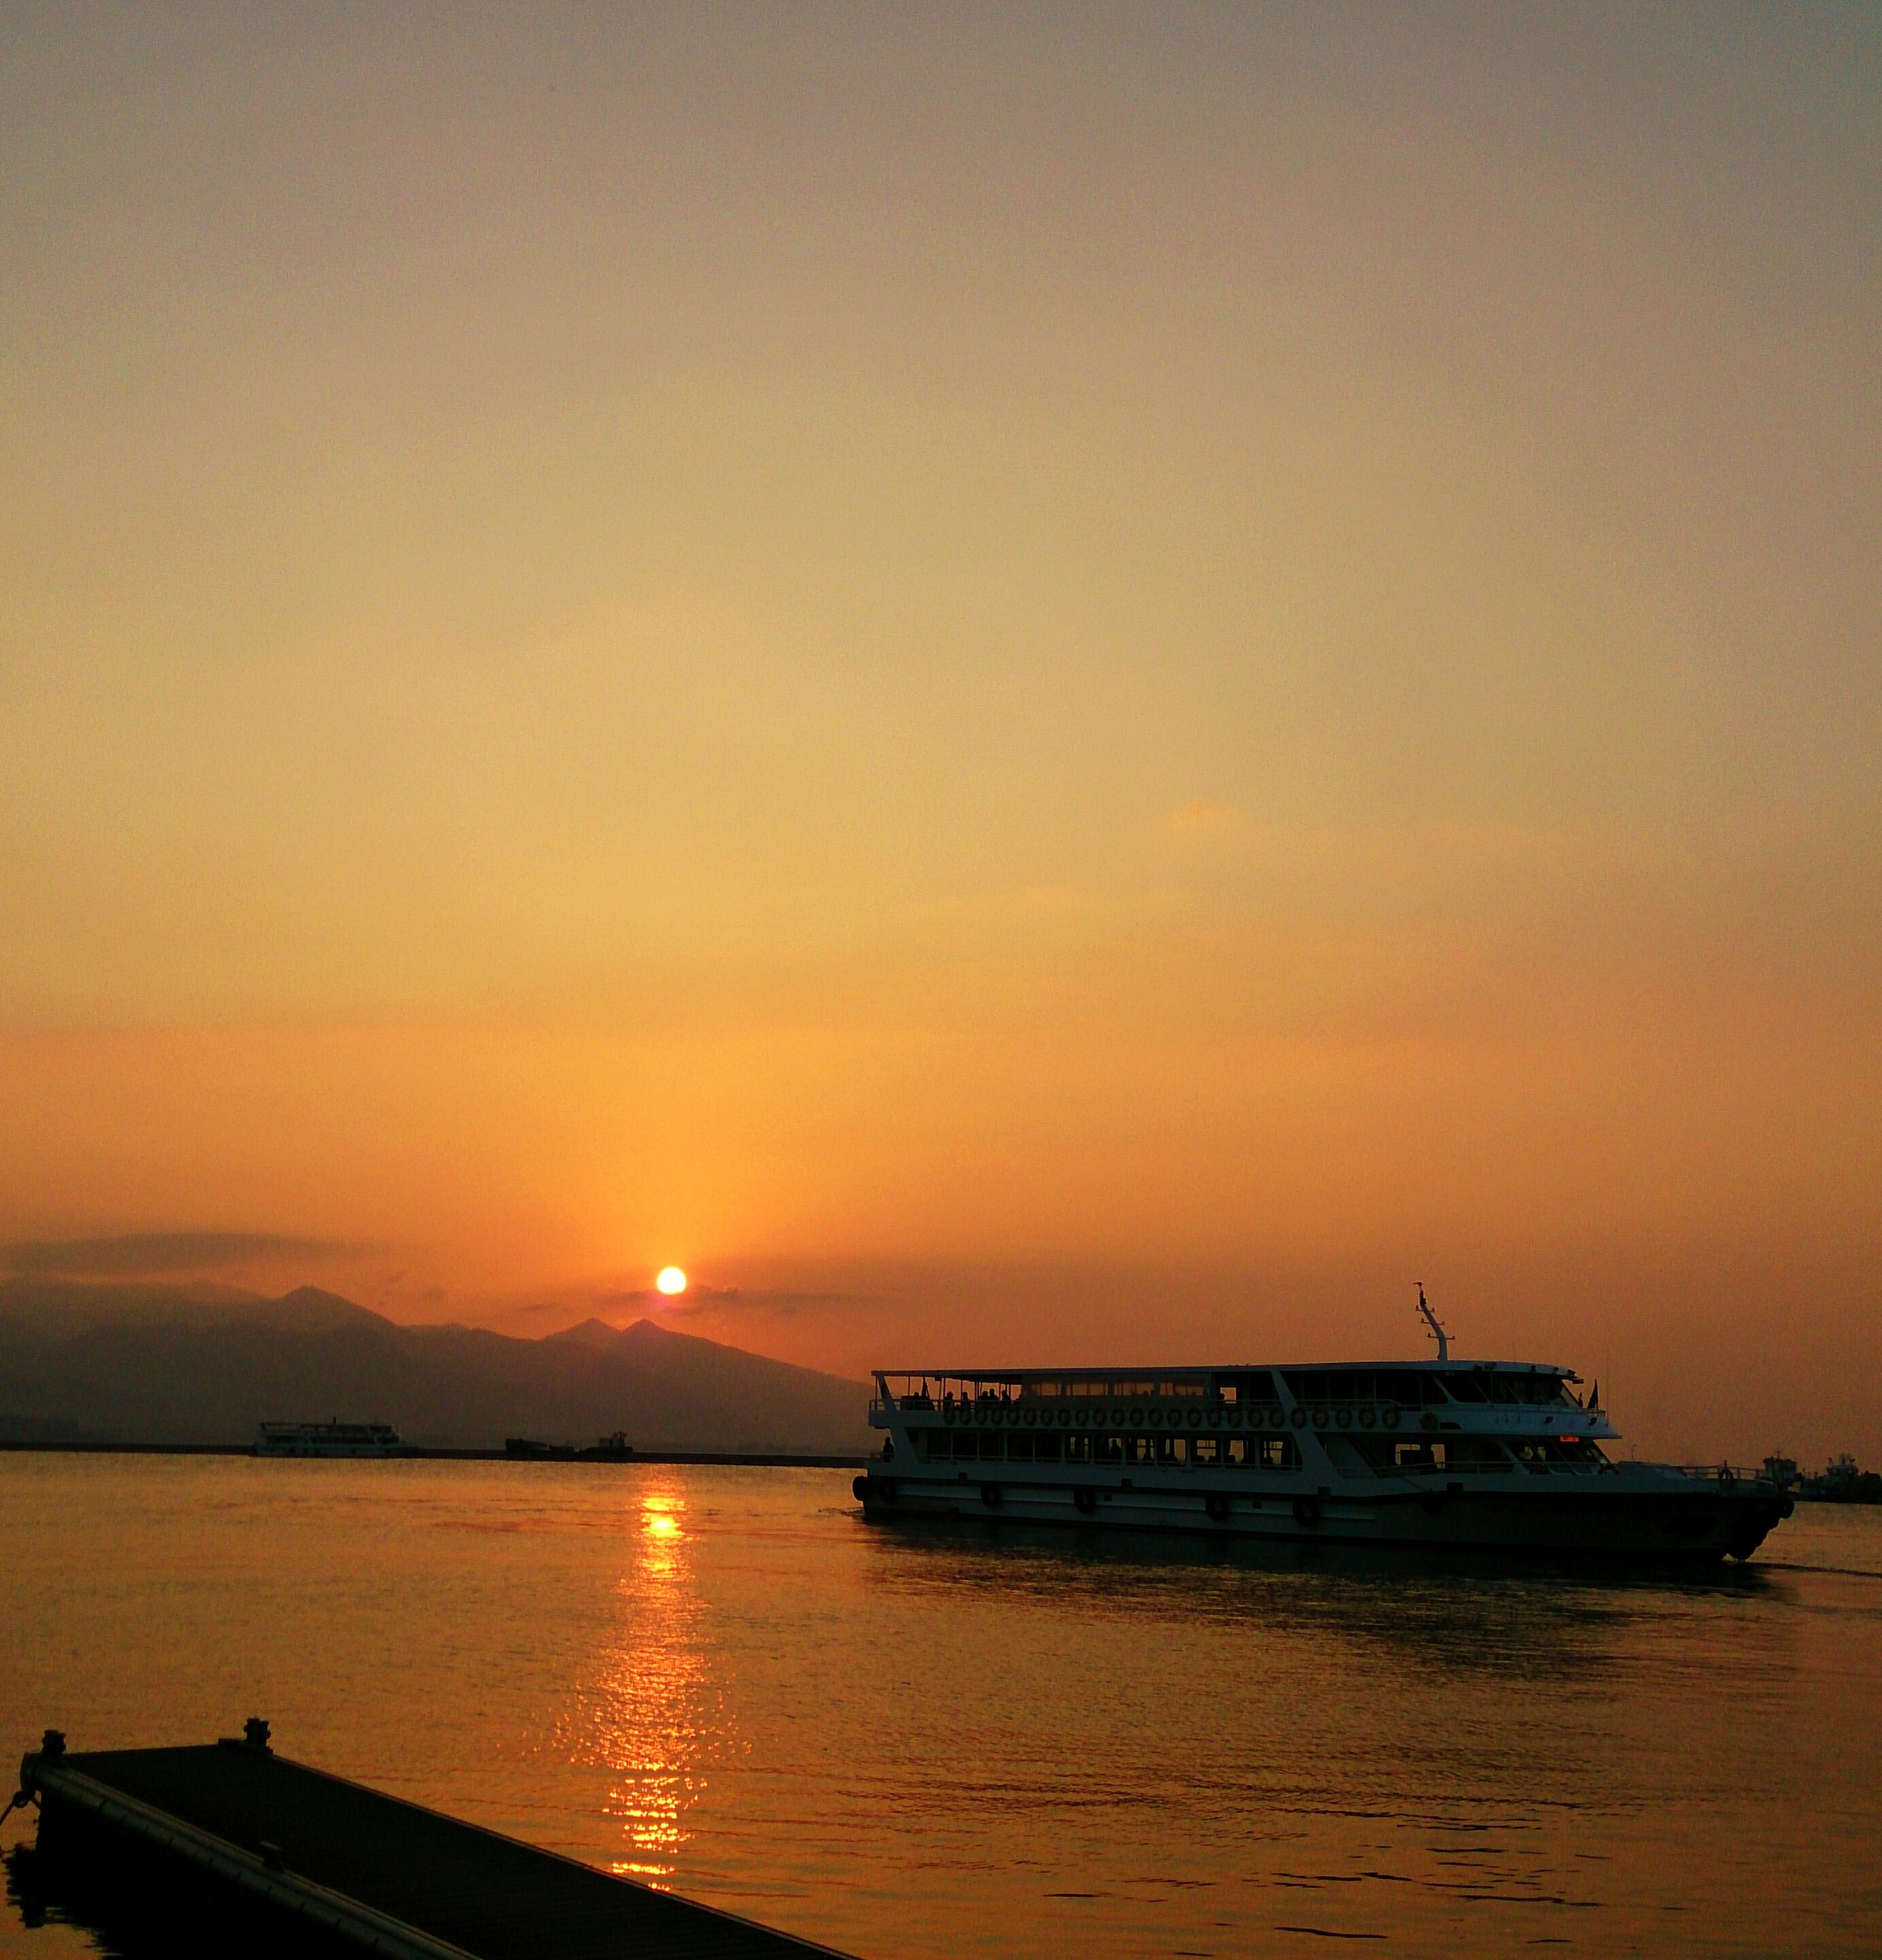 sunset, nautical vessel, transportation, water, mode of transport, boat, orange color, sea, sun, scenics, beauty in nature, waterfront, tranquil scene, sky, moored, tranquility, silhouette, nature, reflection, idyllic